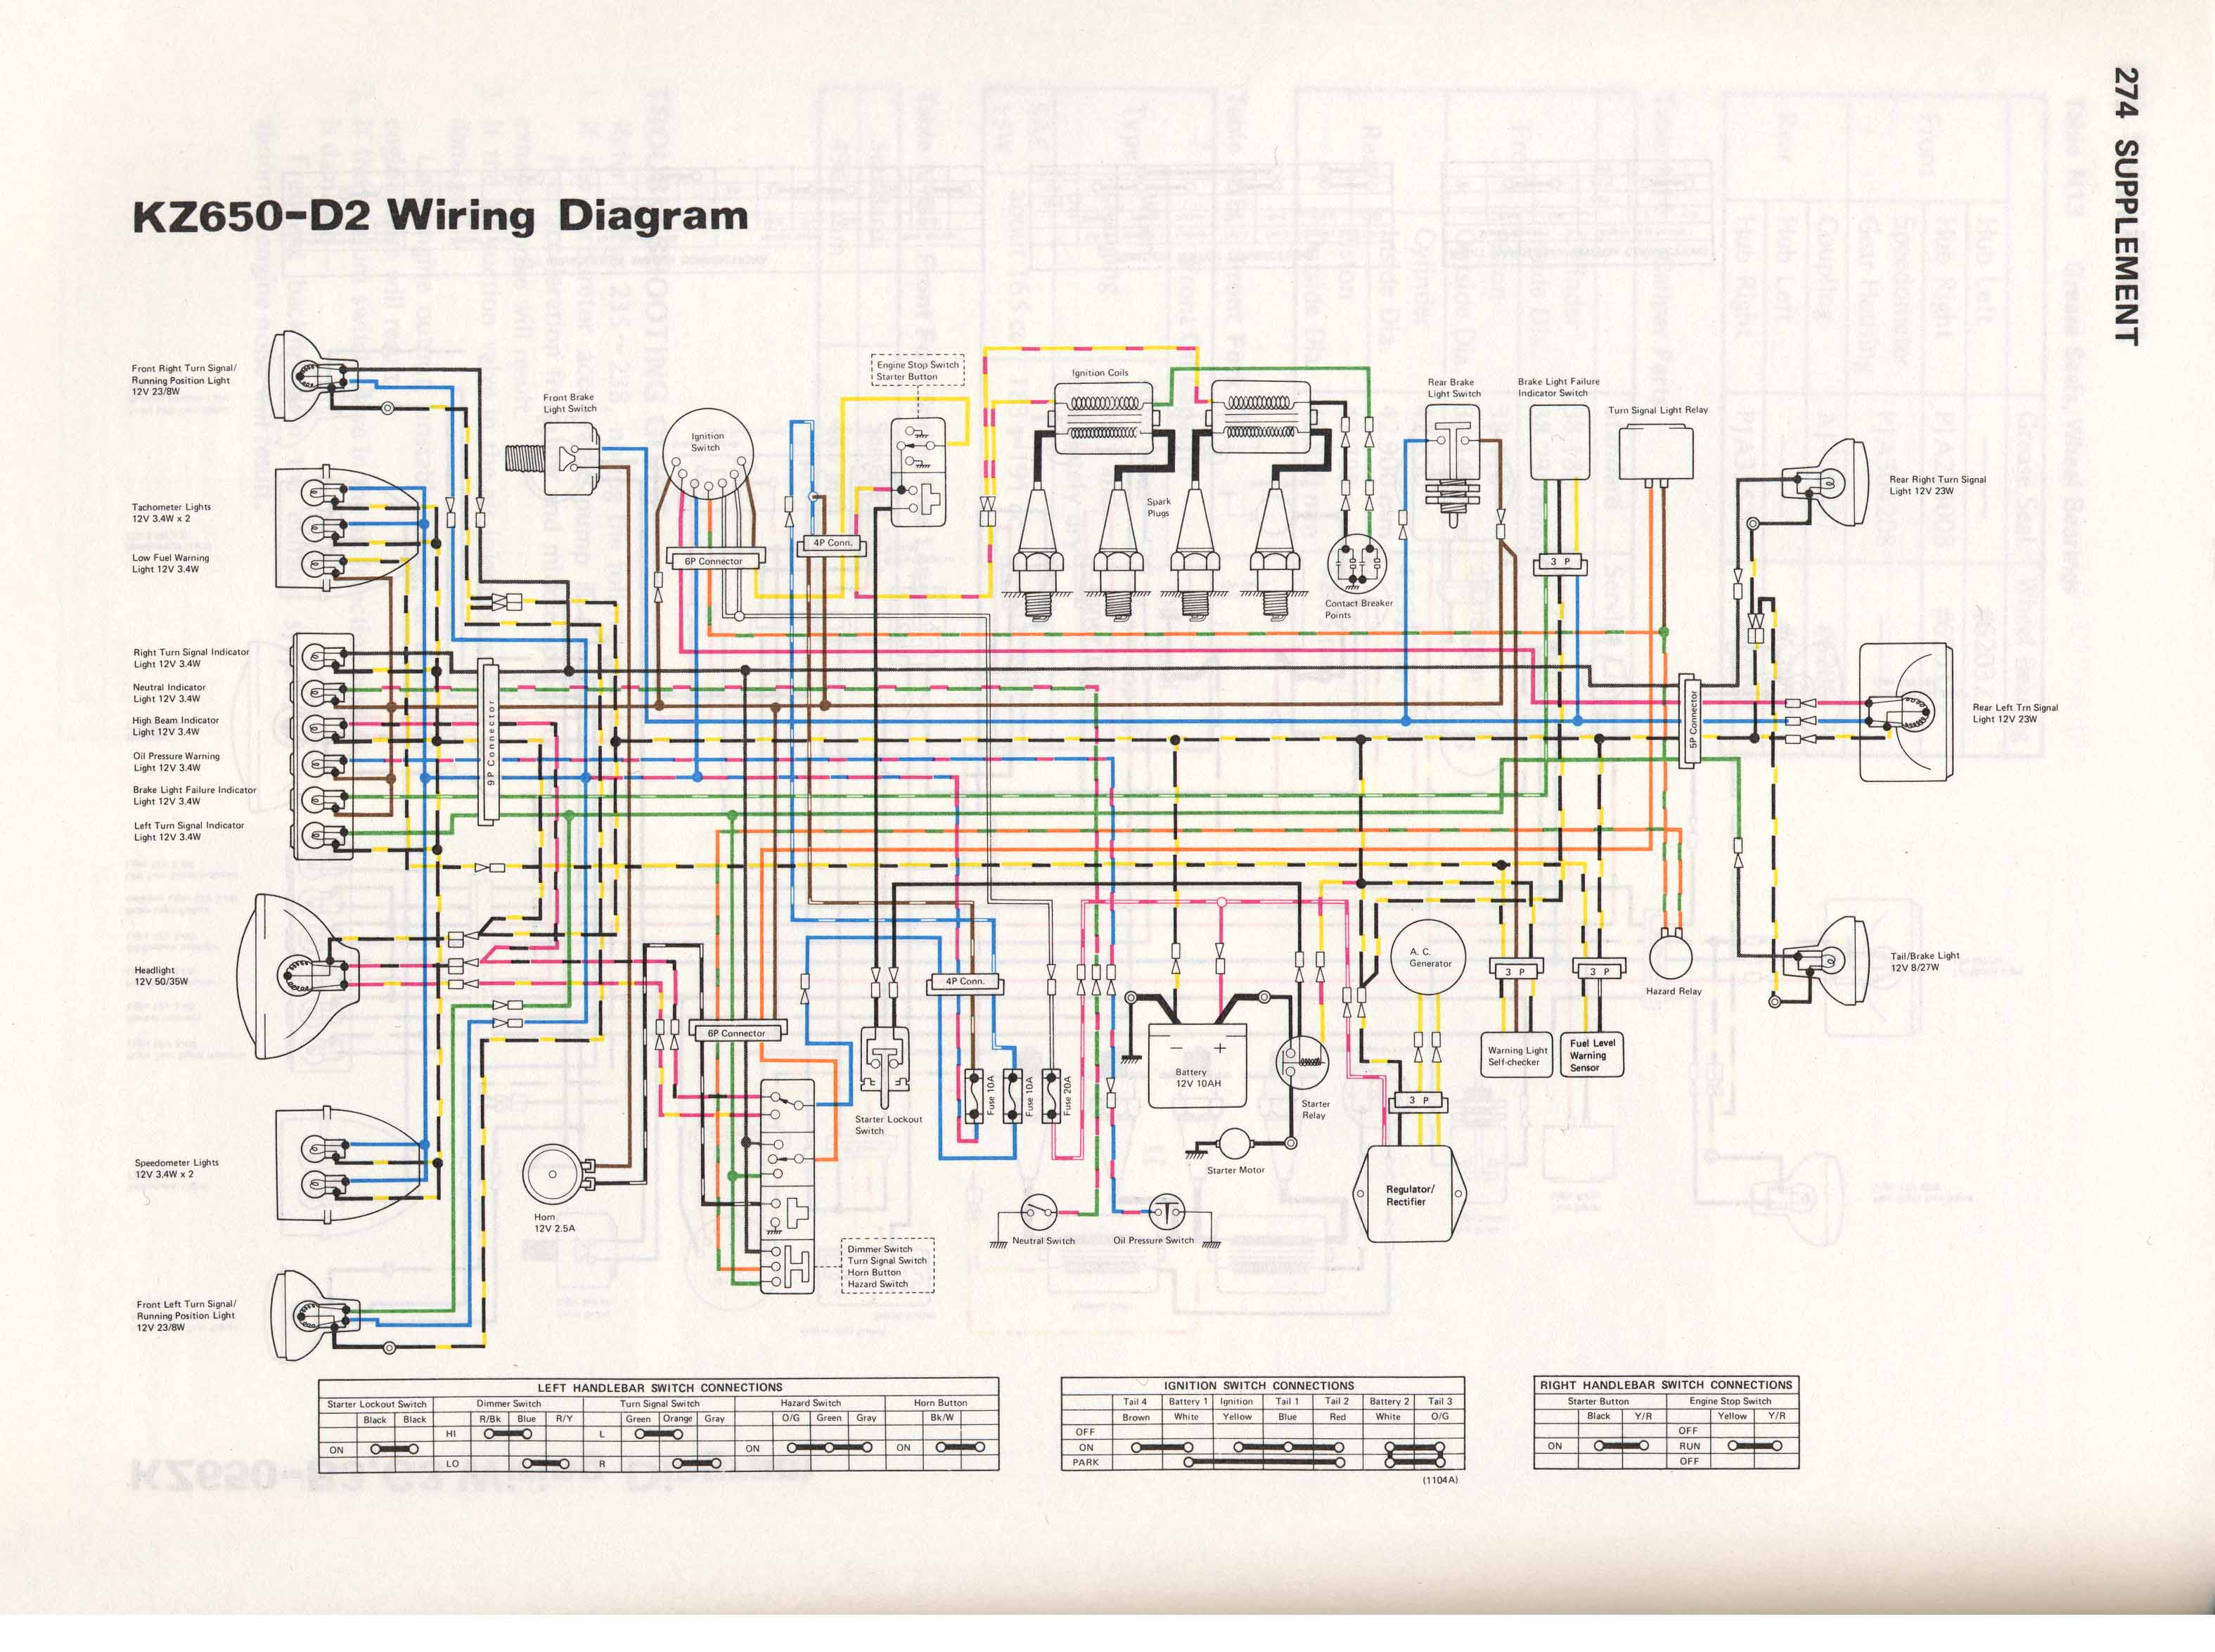 KZ650 D2 kz650 info wiring diagrams 1980 kawasaki kz750 wiring diagram at aneh.co